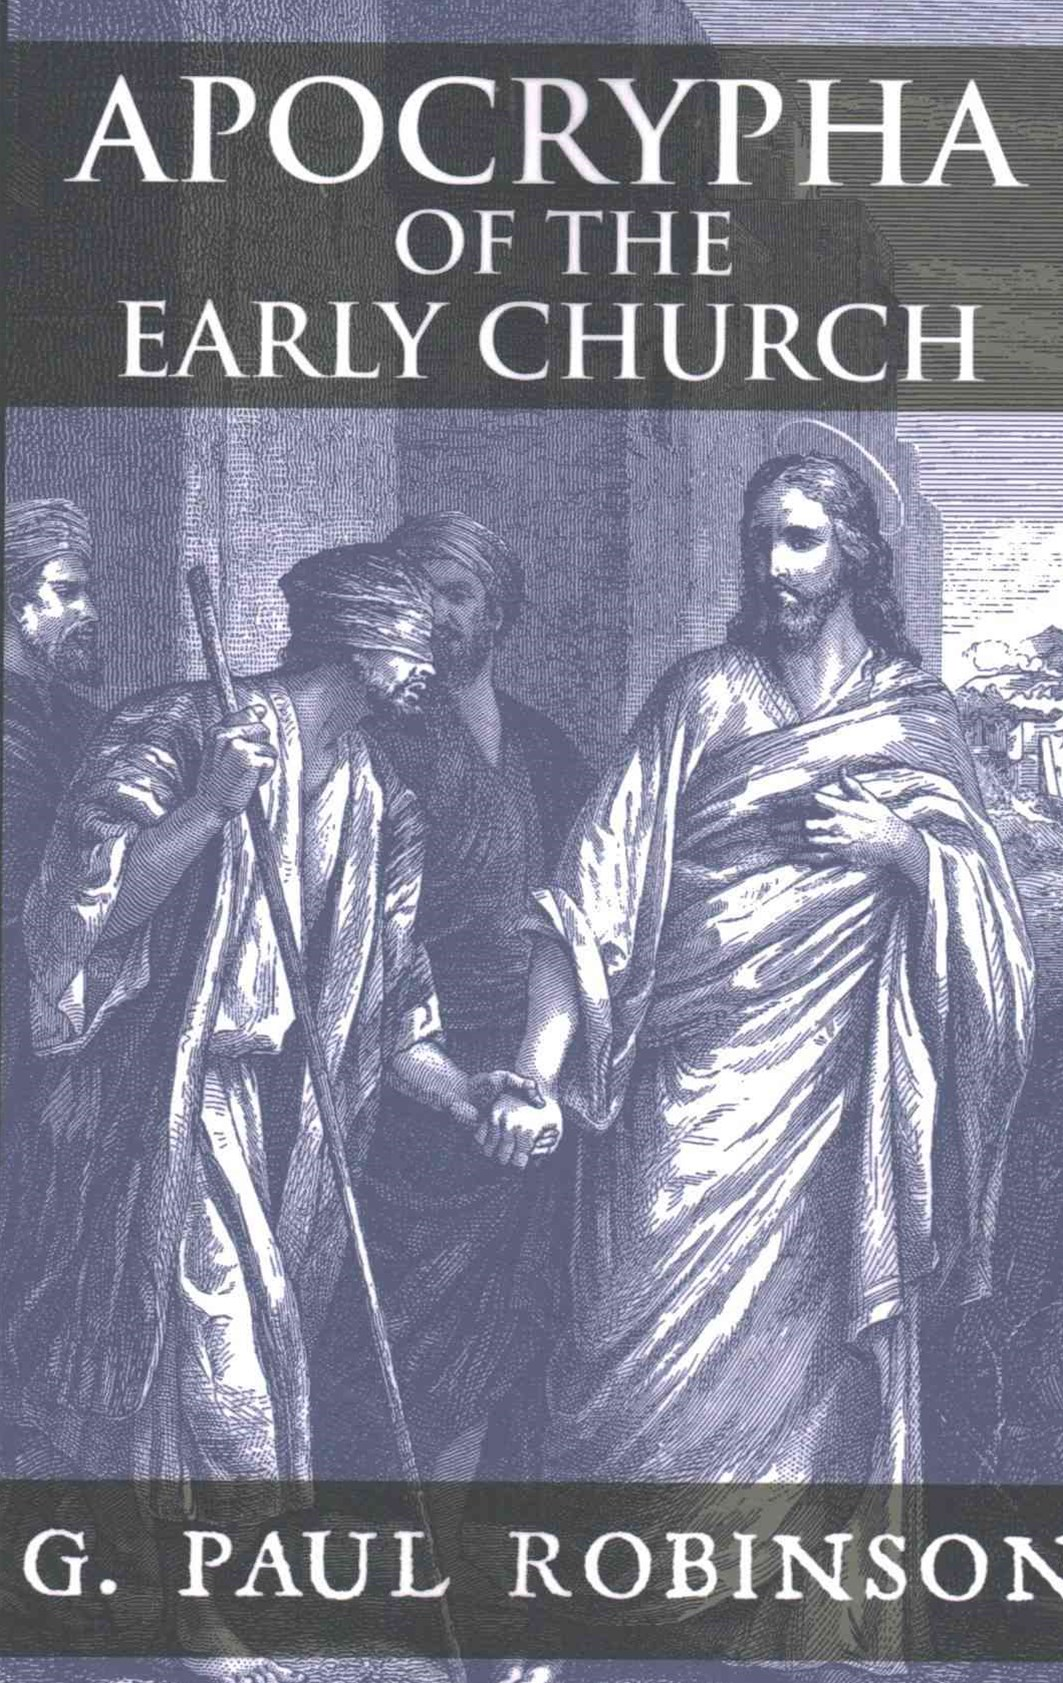 Apocrypha of the Early Church